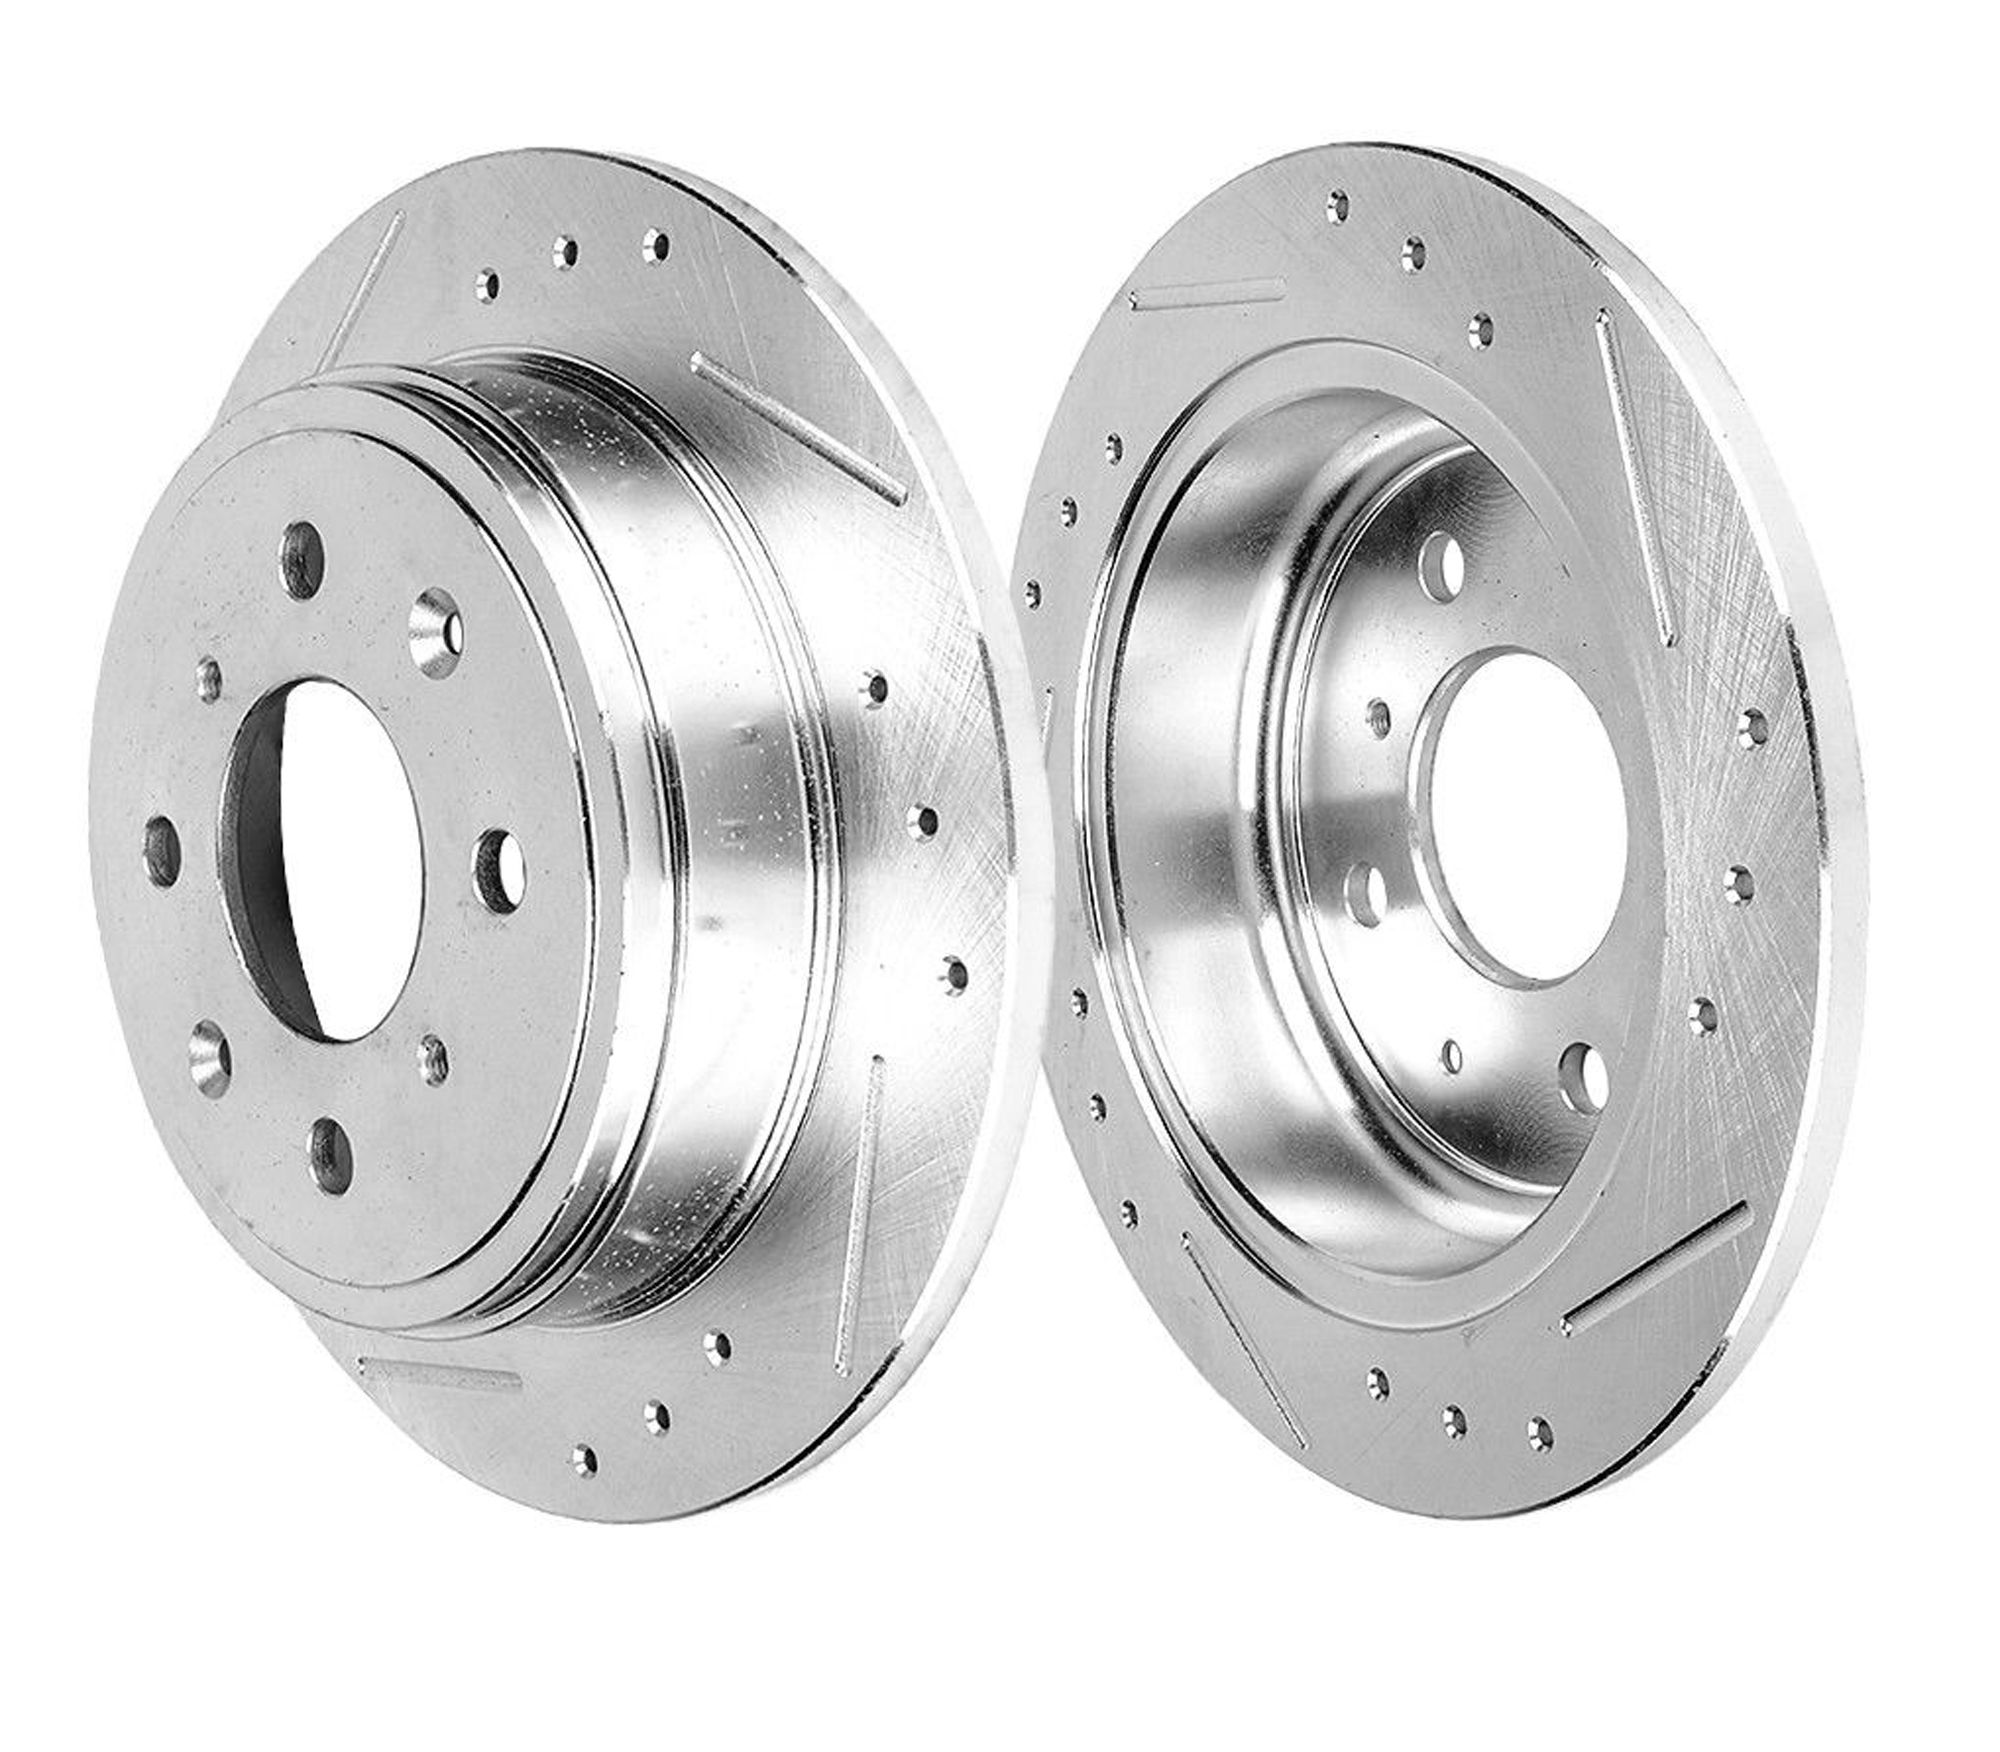 Pair (2) Rear Drilled And Slotted Disc Brake Rotors For